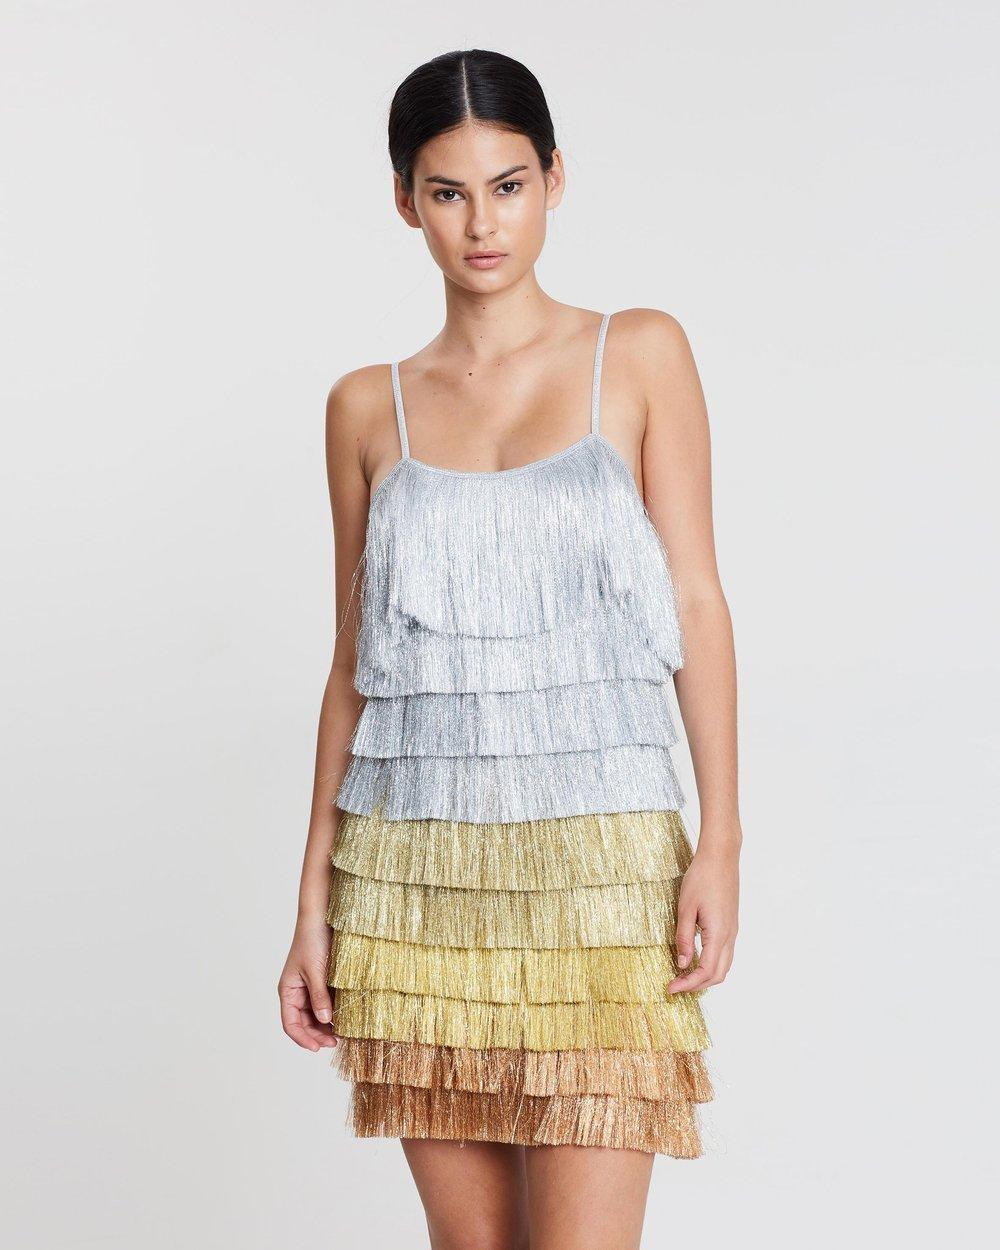 Sass And Bide Before The Storm Dress Size 8 The Volte